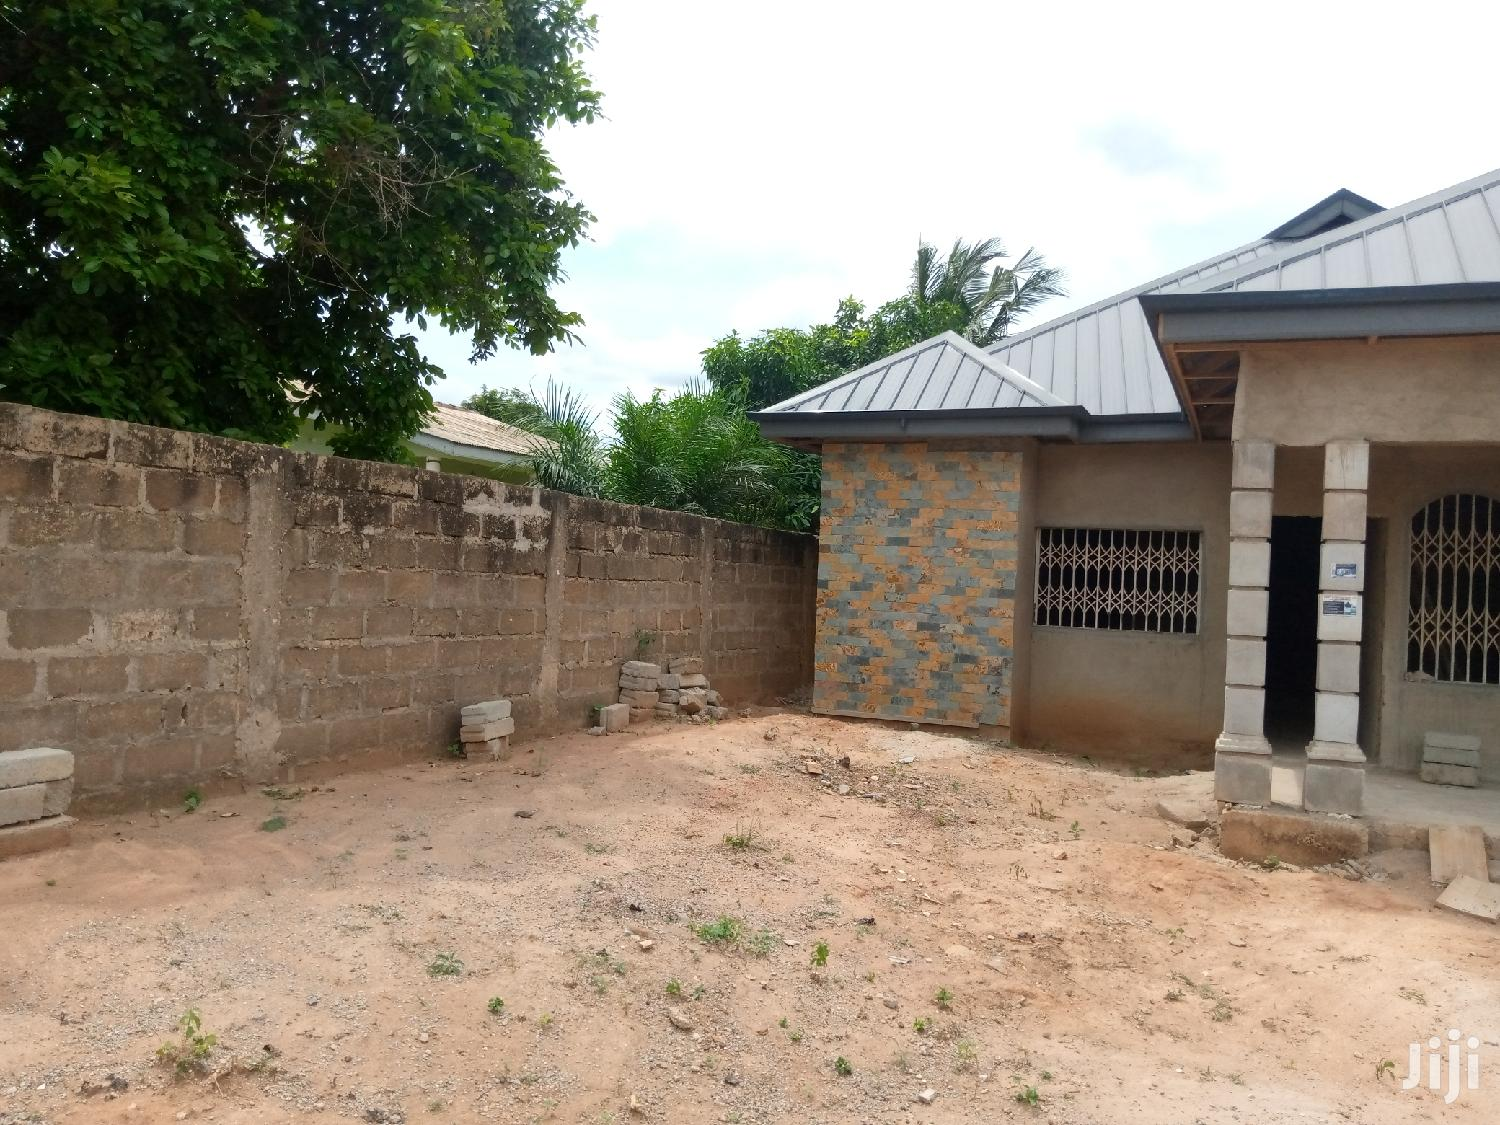 3 Bedroom House | Houses & Apartments For Sale for sale in Adenta Municipal, Greater Accra, Ghana